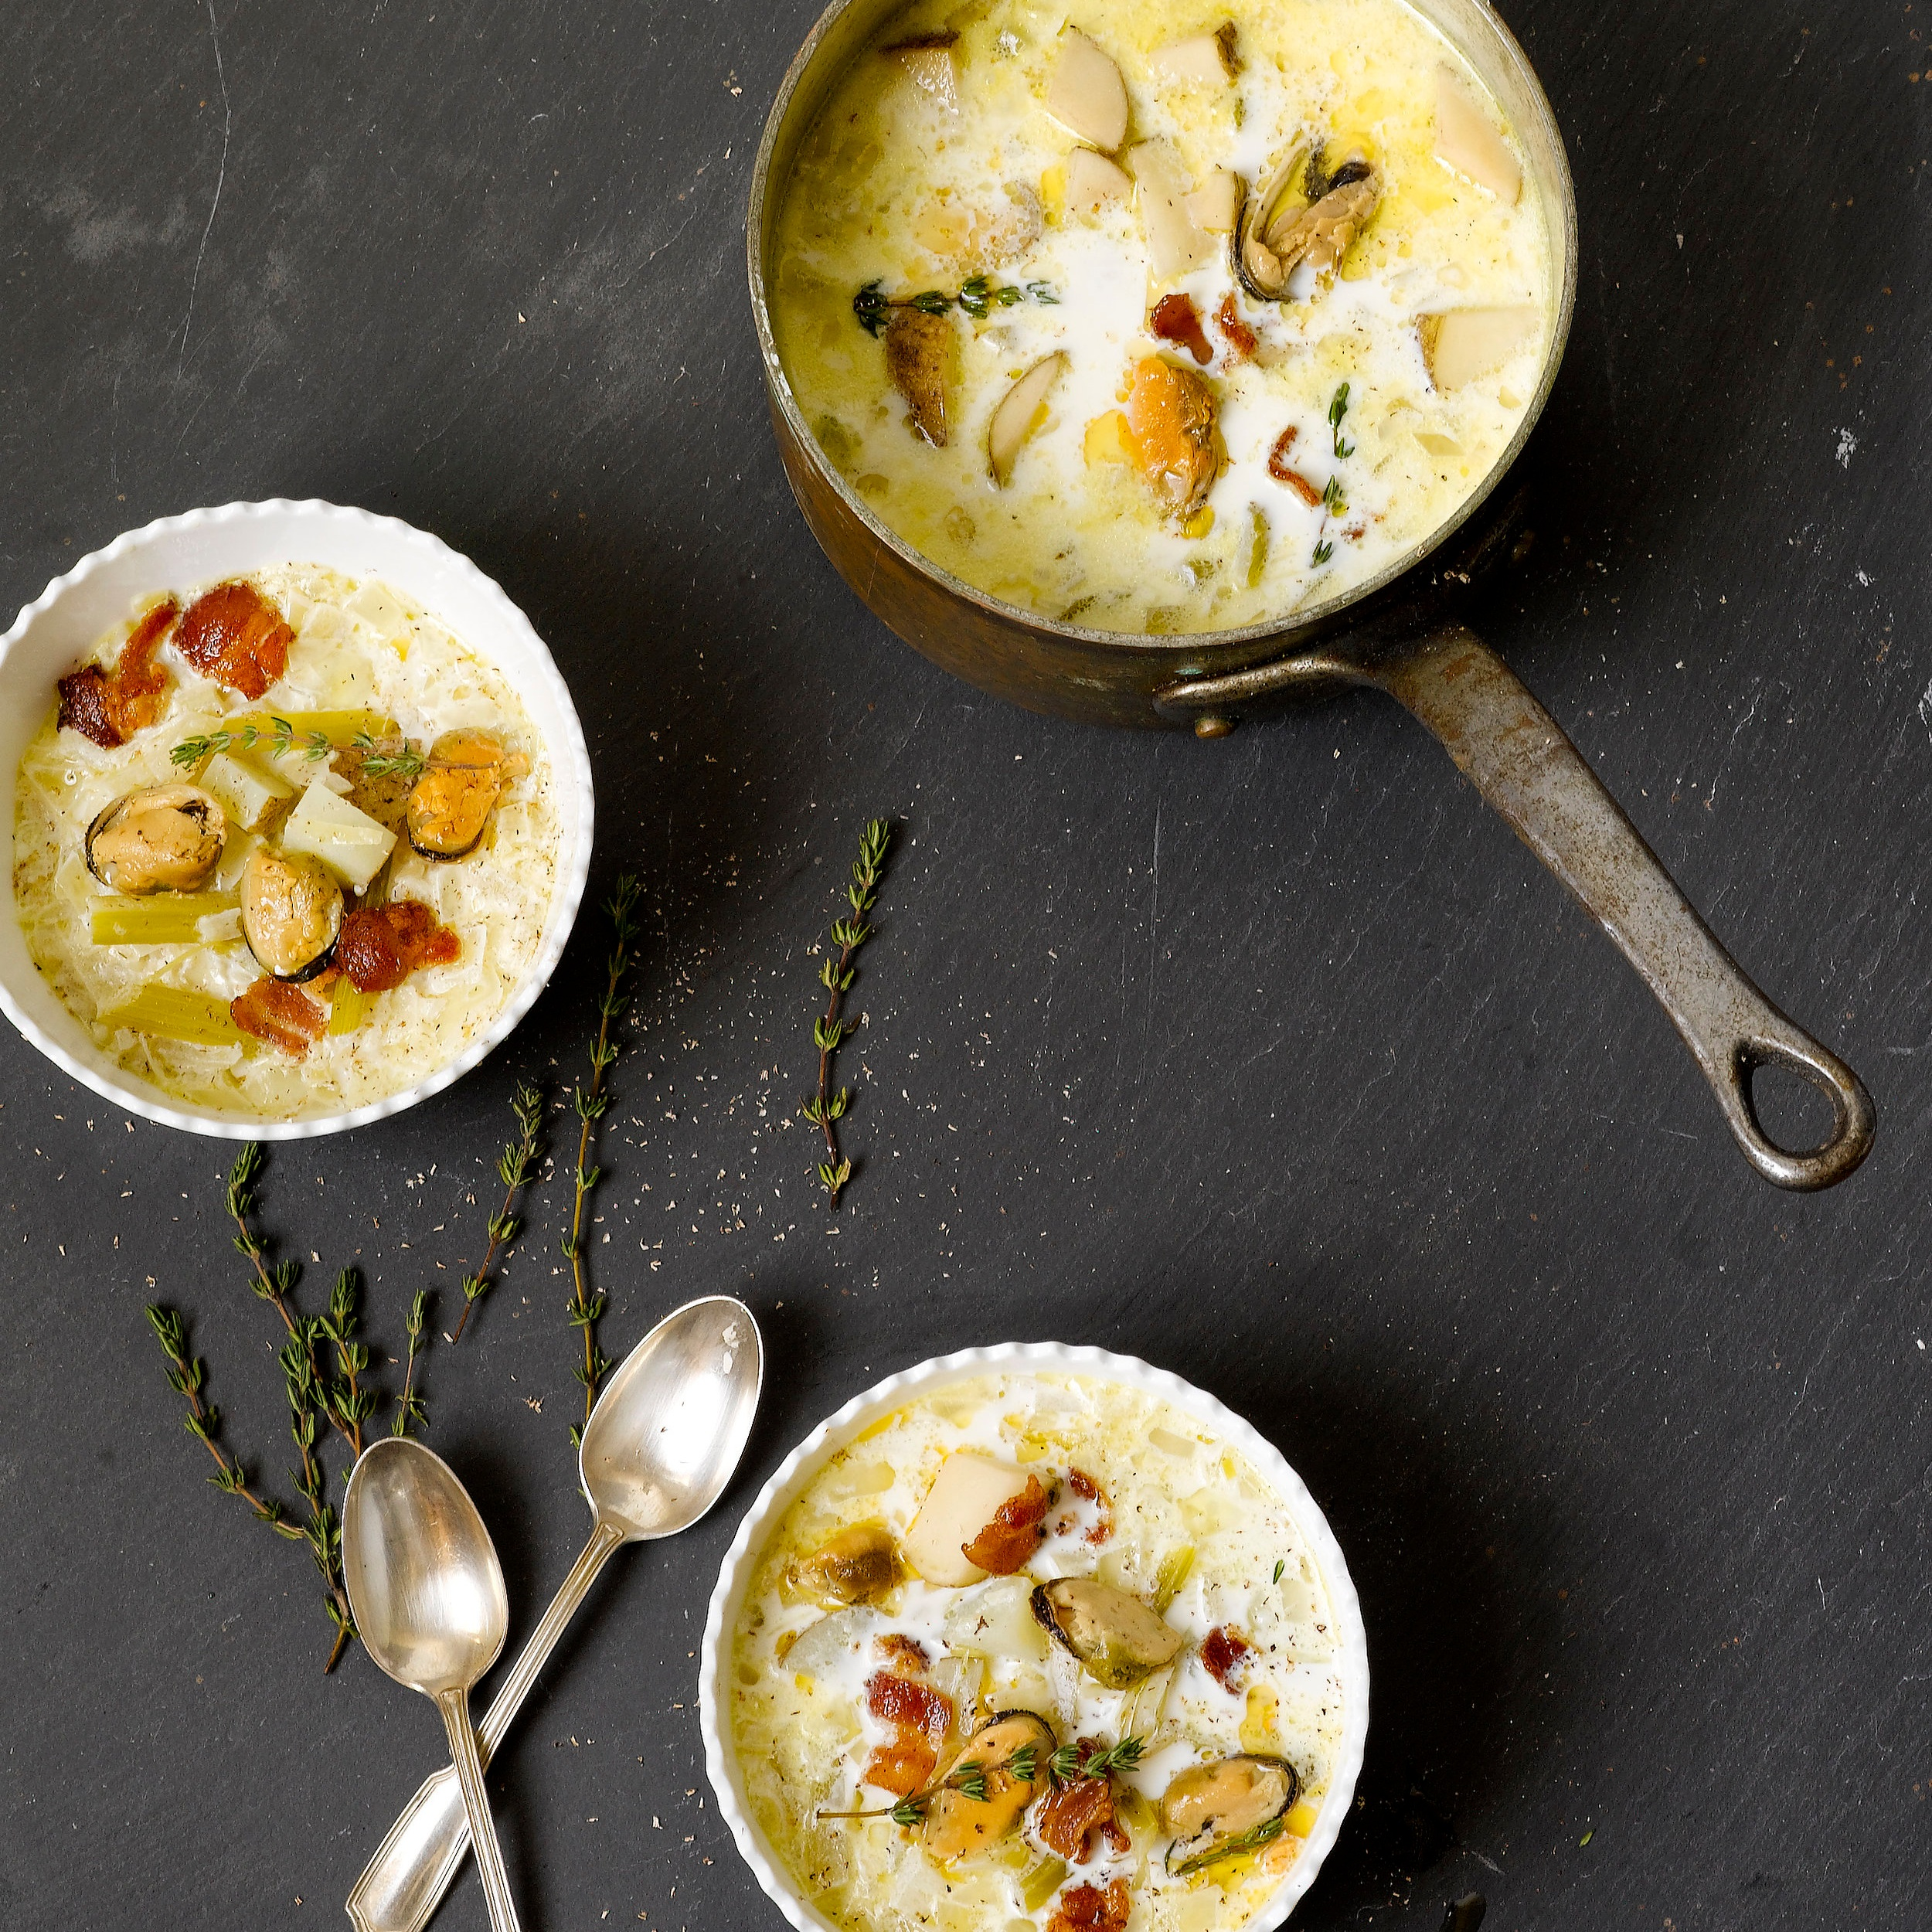 "Smoked Mussels Bisque with Fennel & Potatoes - Ingredients:- 2 Strips Bacon- 1 Tbsp Butter- 1 Medium Onion, finely diced- 4 Celery Stalks, thinly sliced- 1 Large Fennel Bulb, stalks discarded and bulb finely diced- 2 Sprigs Fresh Thyme- 4 Large Russet Potatoes, peels left on, cut into 1-inch pieces- 2 Tins of Cole's Smoked Mussels- 4 Cups Water- 2 Cups Half and Half- Freshly Grated NutmegDirections:Heat the bacon and butter together over medium heat in a large saucepan. When most of the bacon has been rendered and the meat begins to turn dark brown, add the onion, celery, fennel bulb, and thyme. Cook until the vegetables are translucent, stirring occasionally, about 5 minutes. Add the potatoes, mussels, and water. Bring to a simmer and cook until the potatoes begin to fall apart, about 20 minutes.Add the half-and-half and turn the heat off. Stir to combine and let sit for 20 minutes so all the flavors can meld.Divide the bisque among 4 soup bowls and garnish with a few gratings of nutmeg.Serves 4.*(recipe adapted from ""For Cod and Country: Simple, Delicious, Sustainable Cooking"" by Barton Seaver)*"